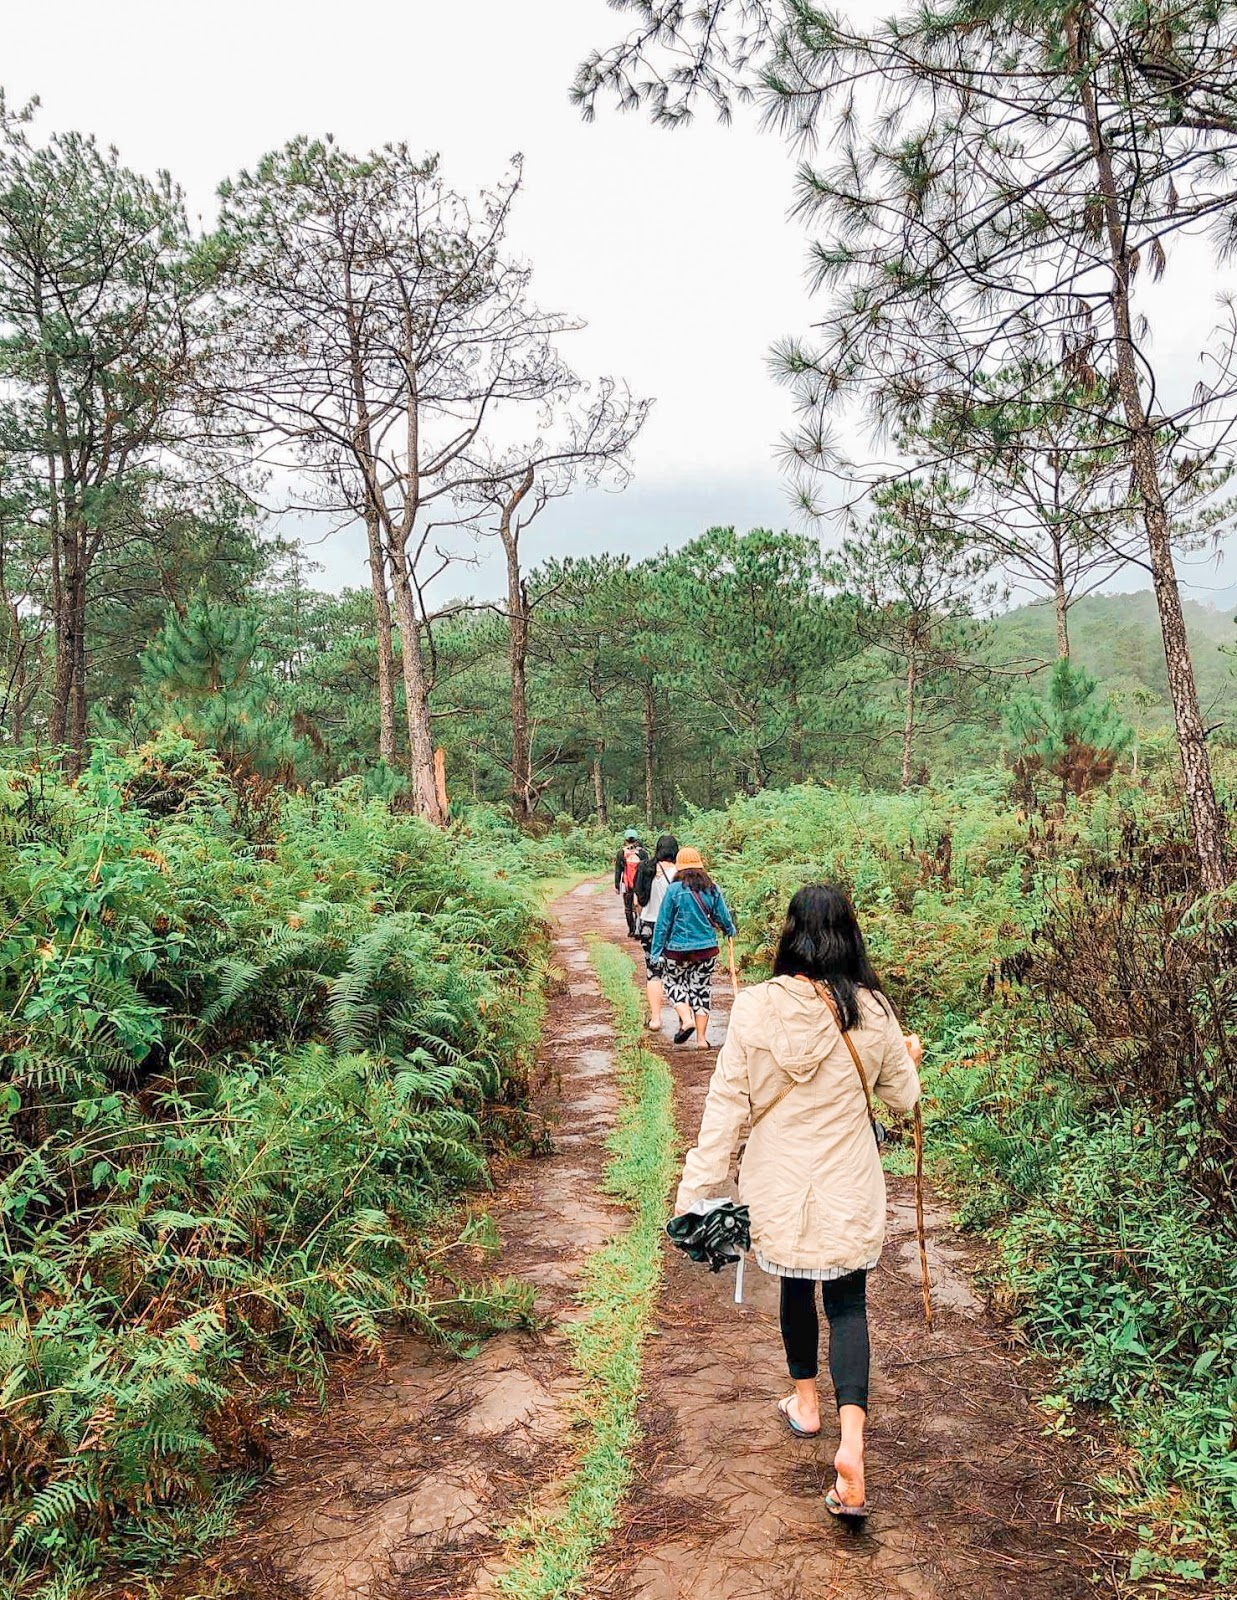 Marlboro Hills, The Unexpected 4N3D Baguio-Sagada Adventure